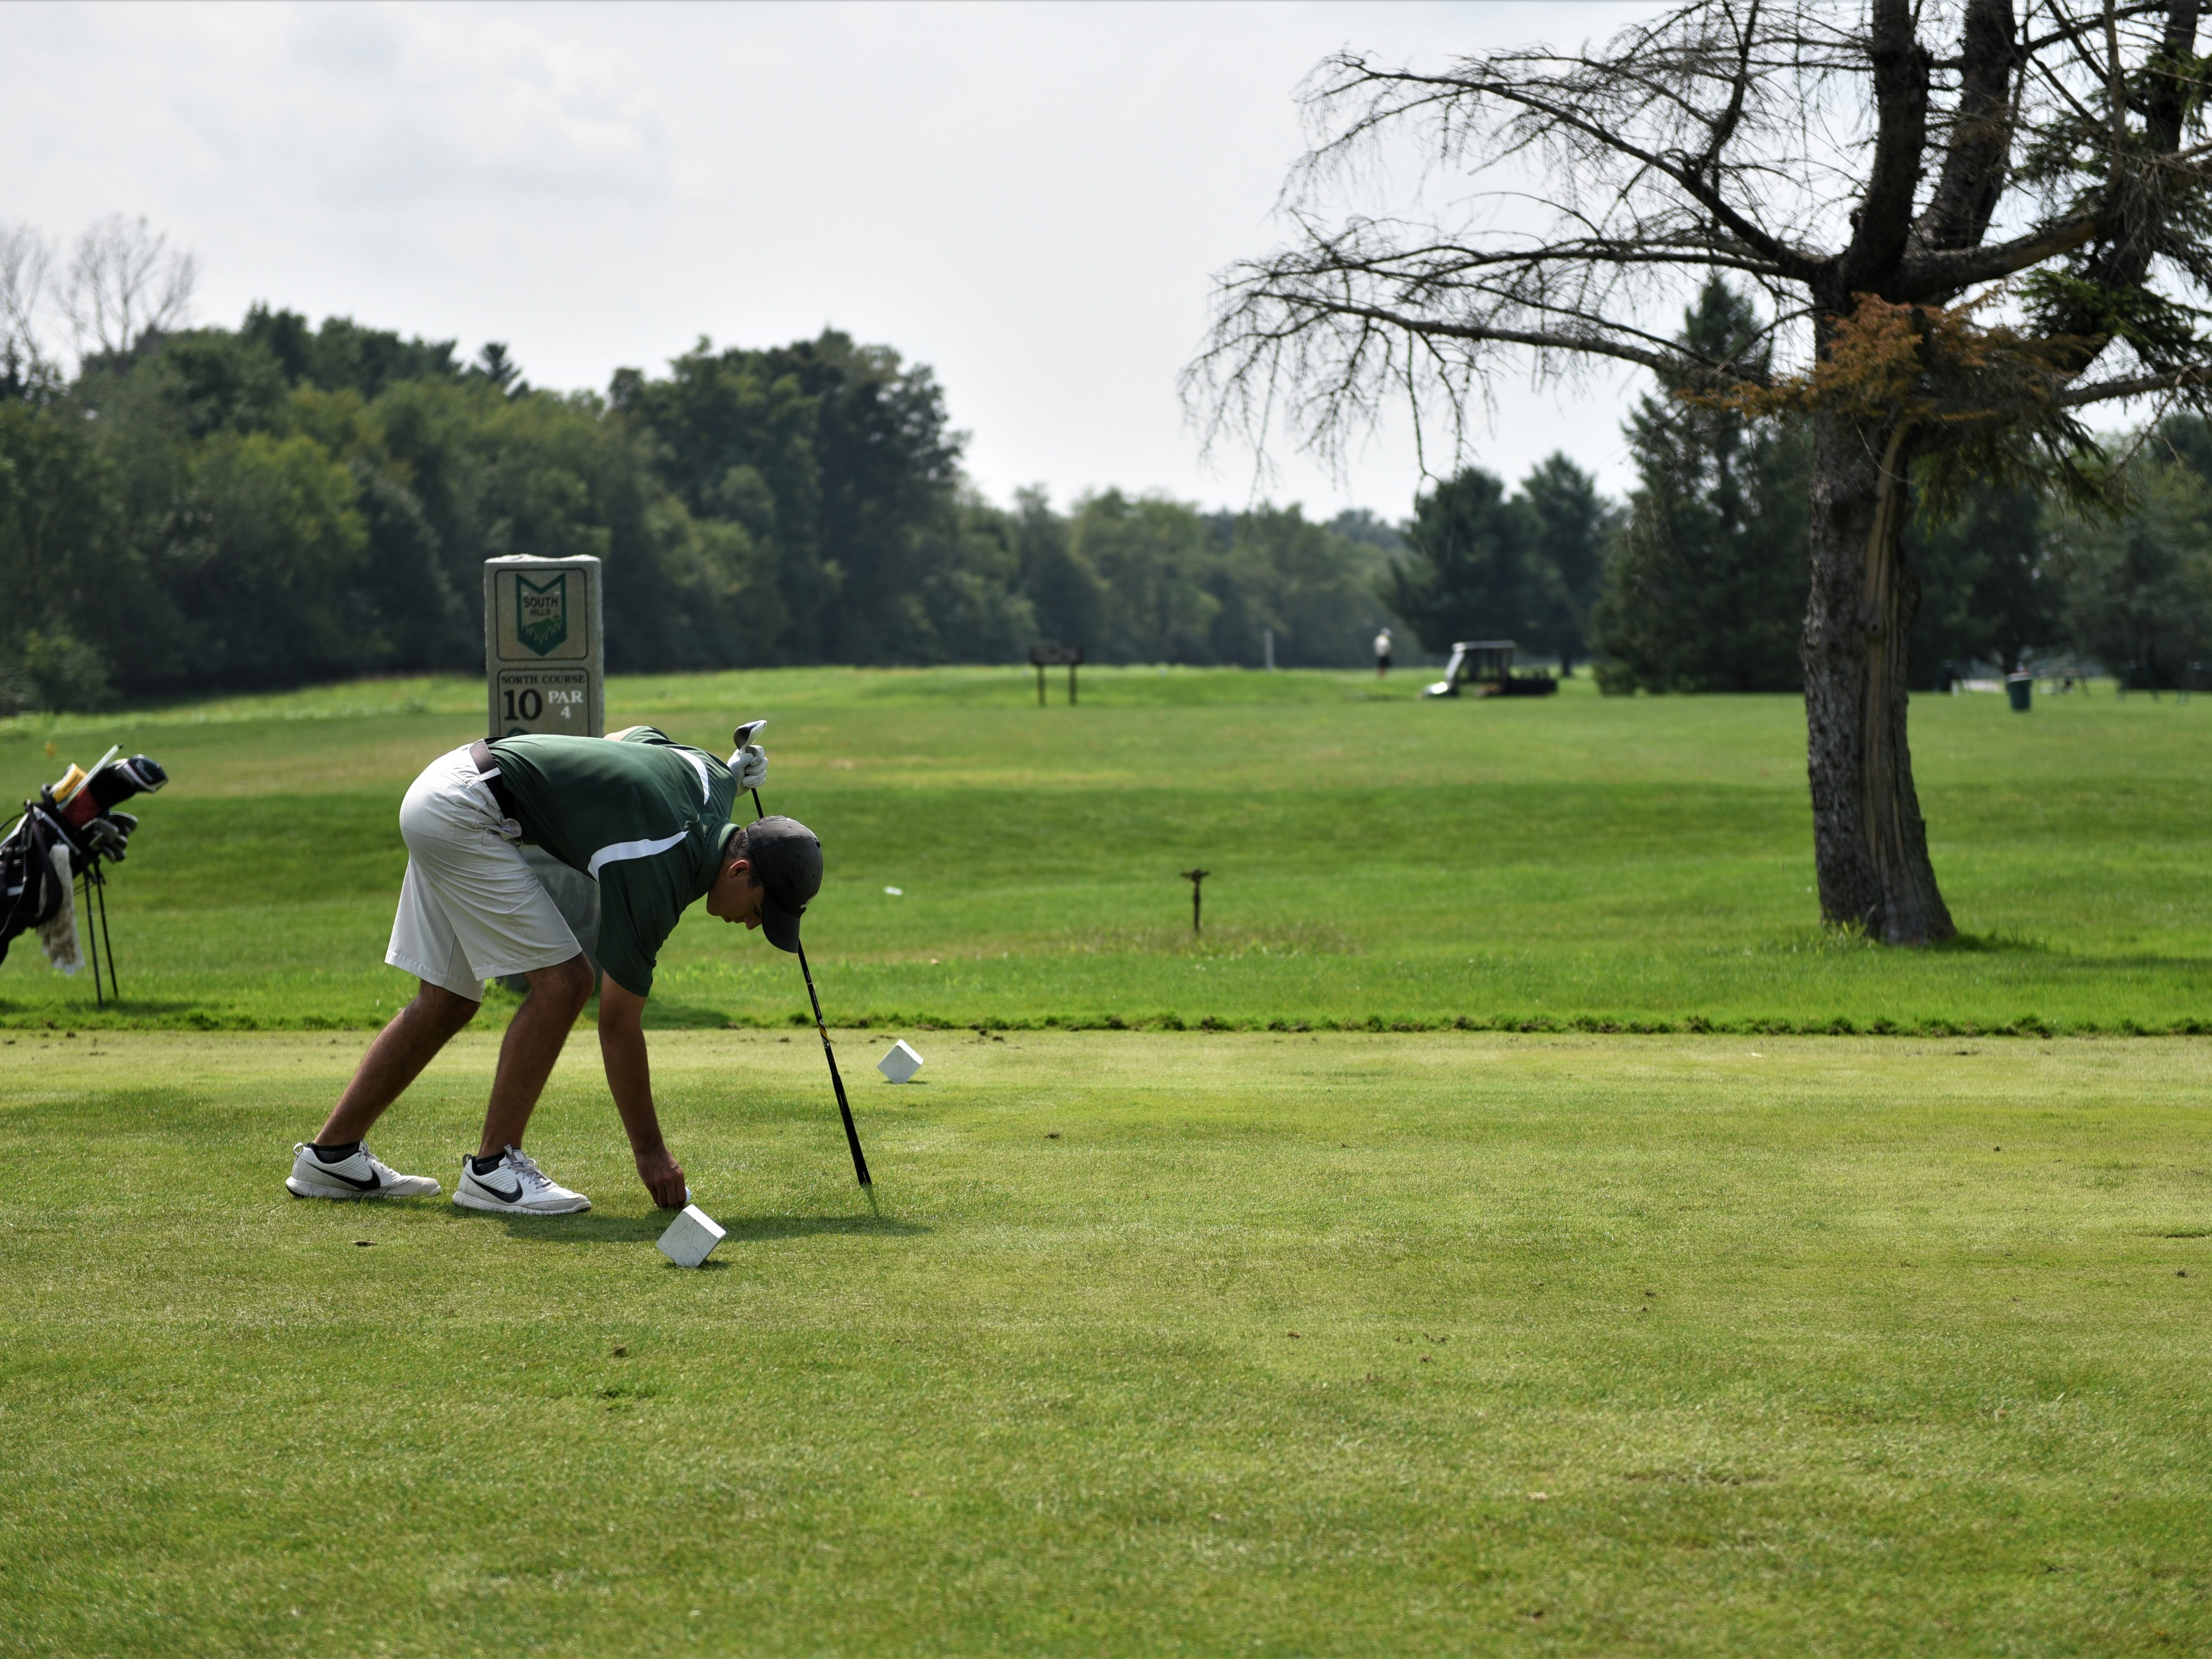 Alex May, of York County Tech, sets up his tee during the Division III golf match at the South Hills Golf Course on Aug. 27, 2018.